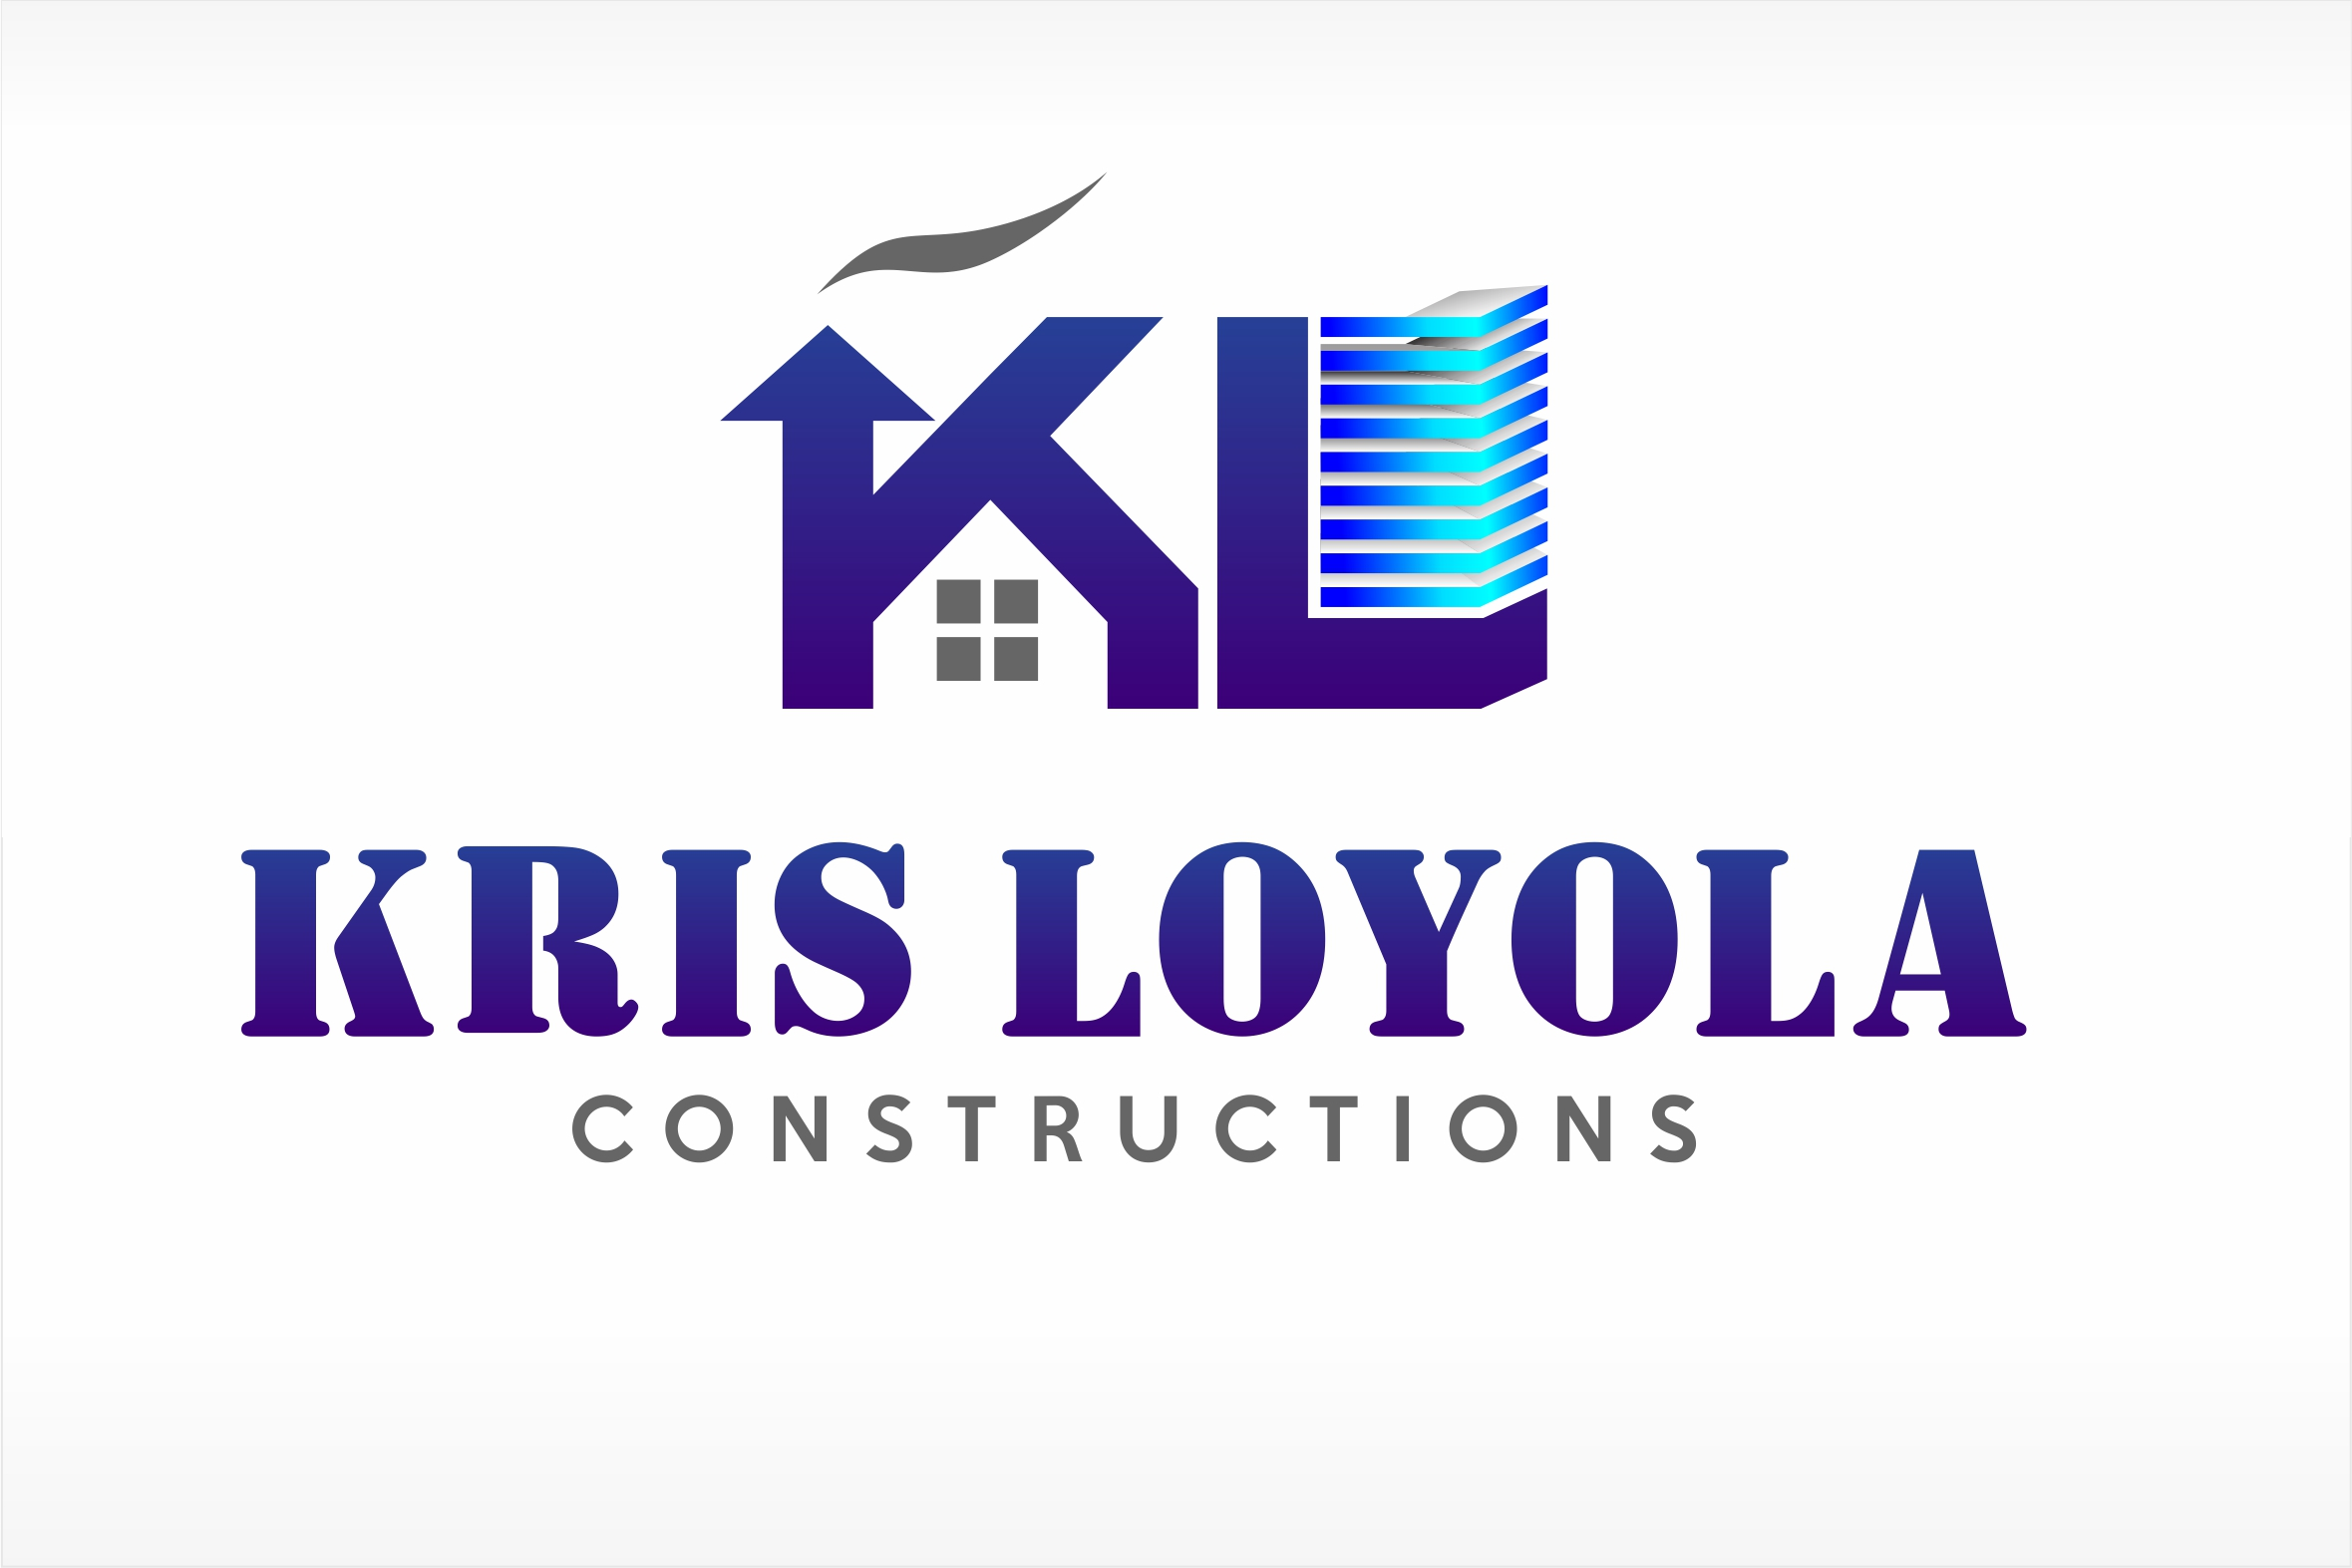 Logo Design by Ali Ahmad - Entry No. 53 in the Logo Design Contest Kris Loyola Logo Design.